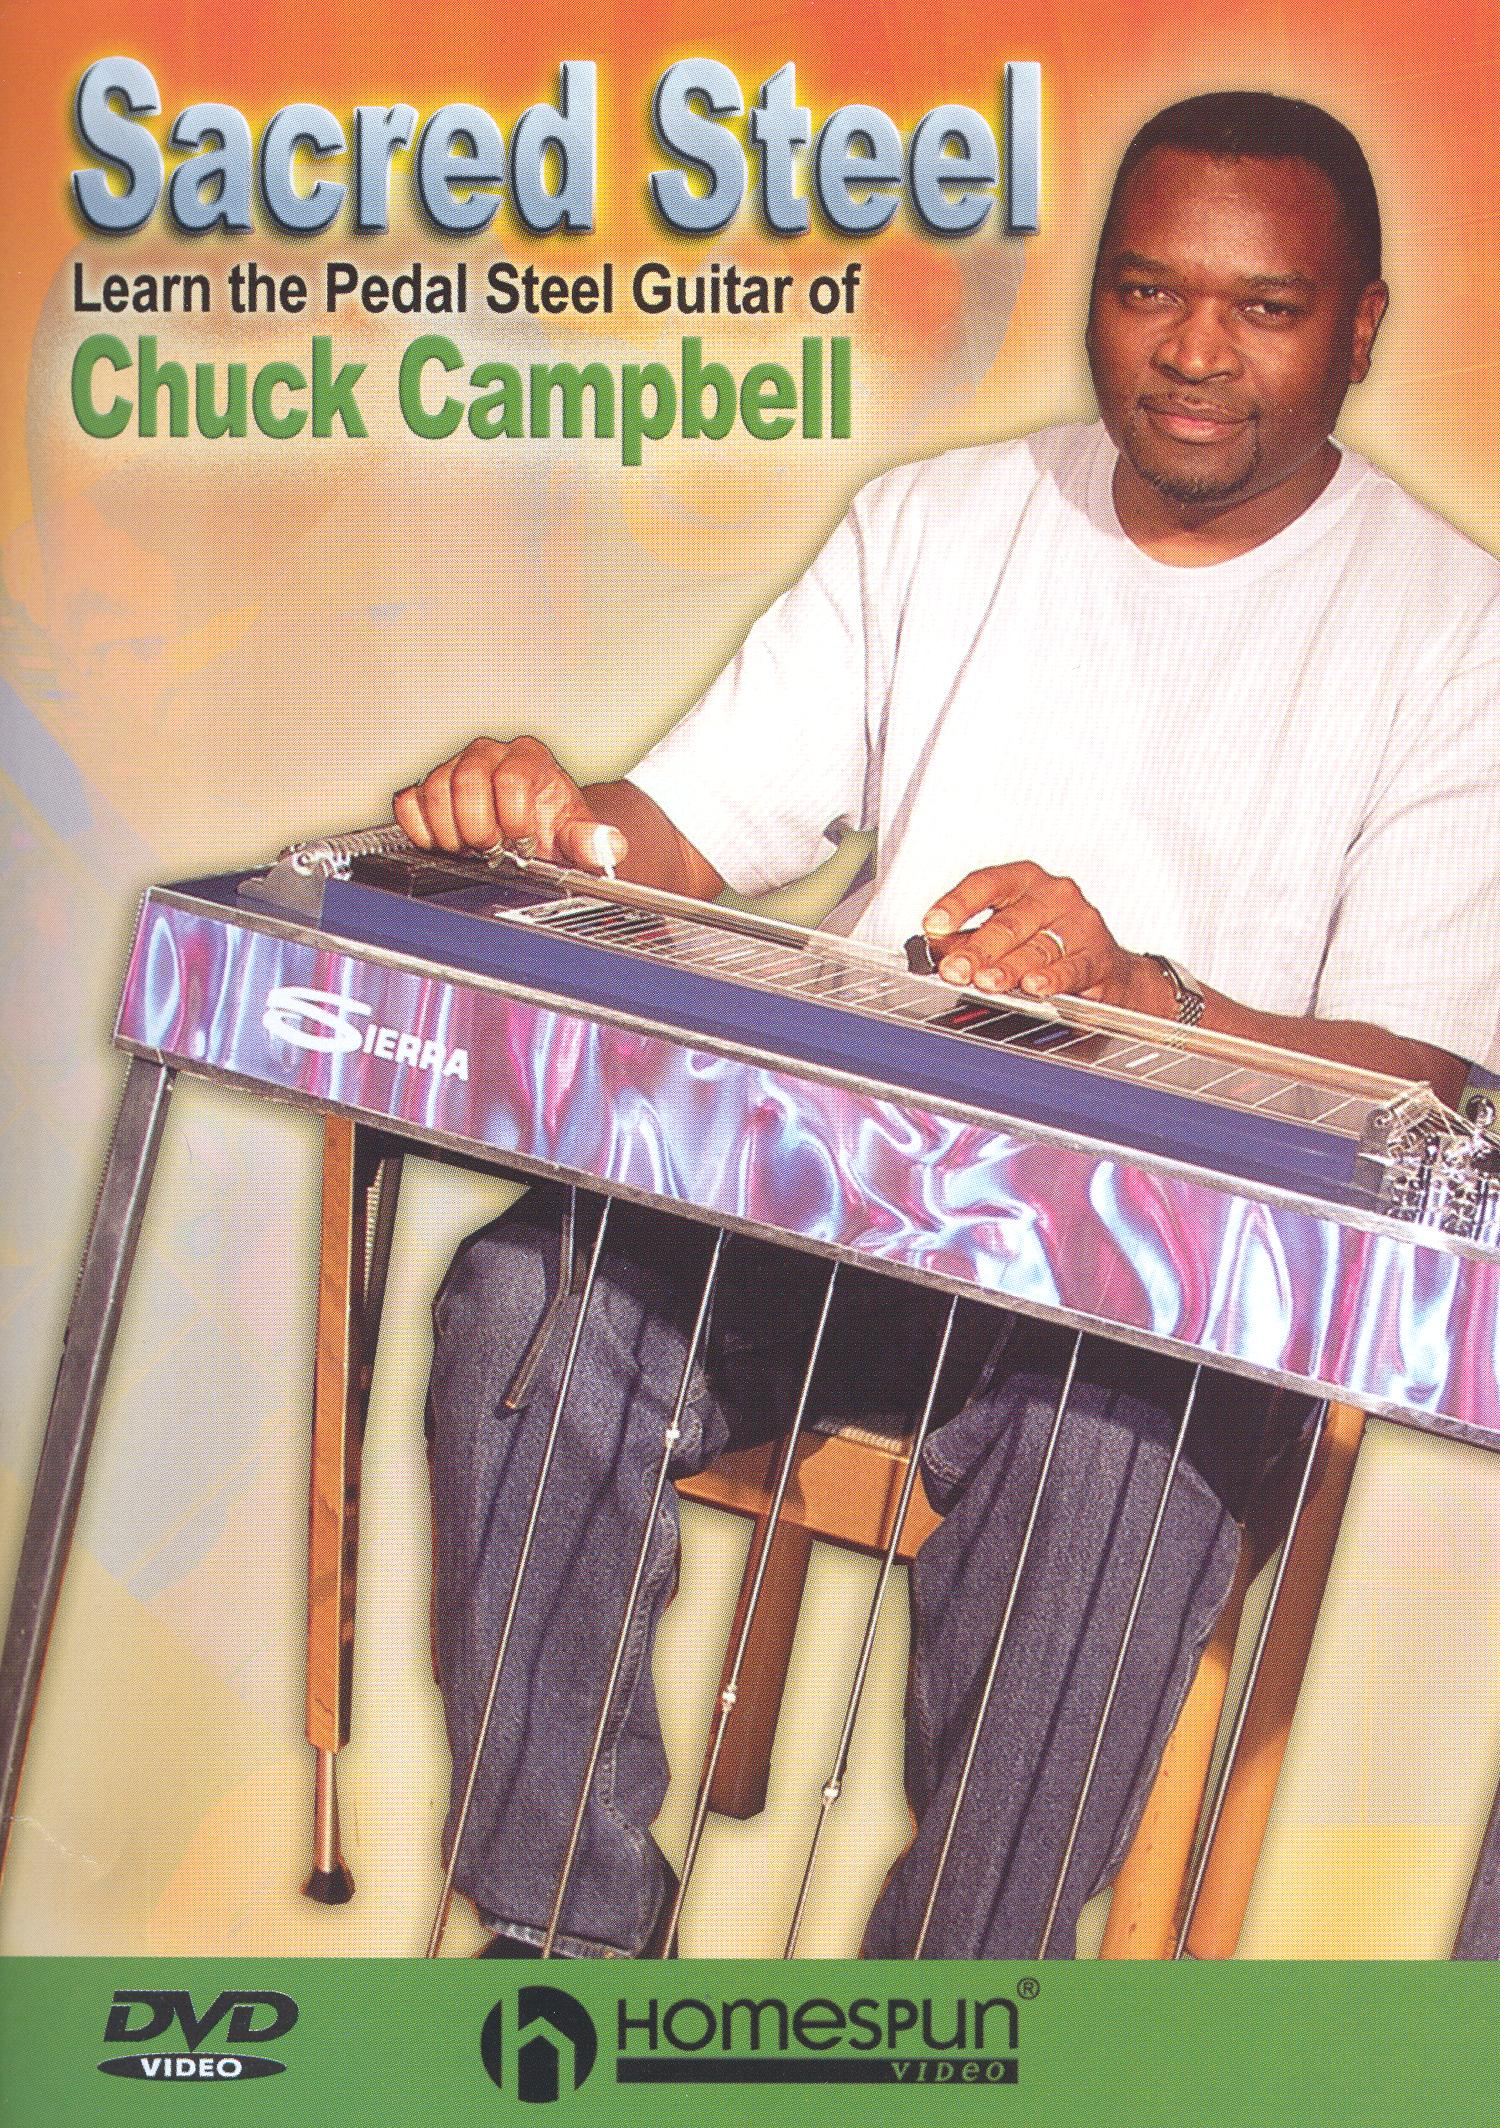 Sacred Steel: Learn the Pedal Steel Guitar Of Chuck Campbell